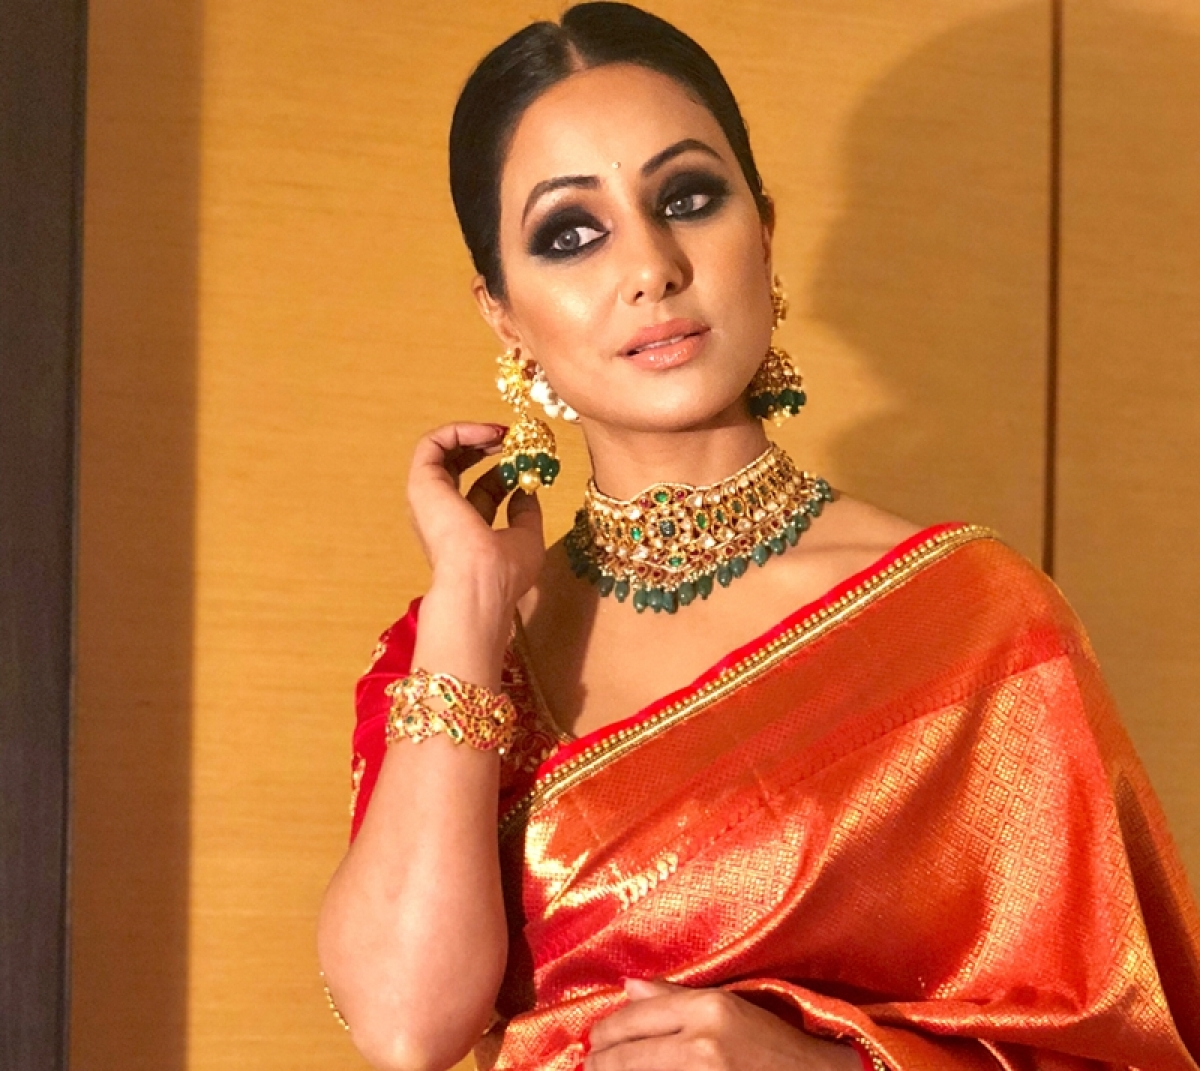 Actress Hina Khan denies allegations of Rs. 12 Lakh jewellery fraud